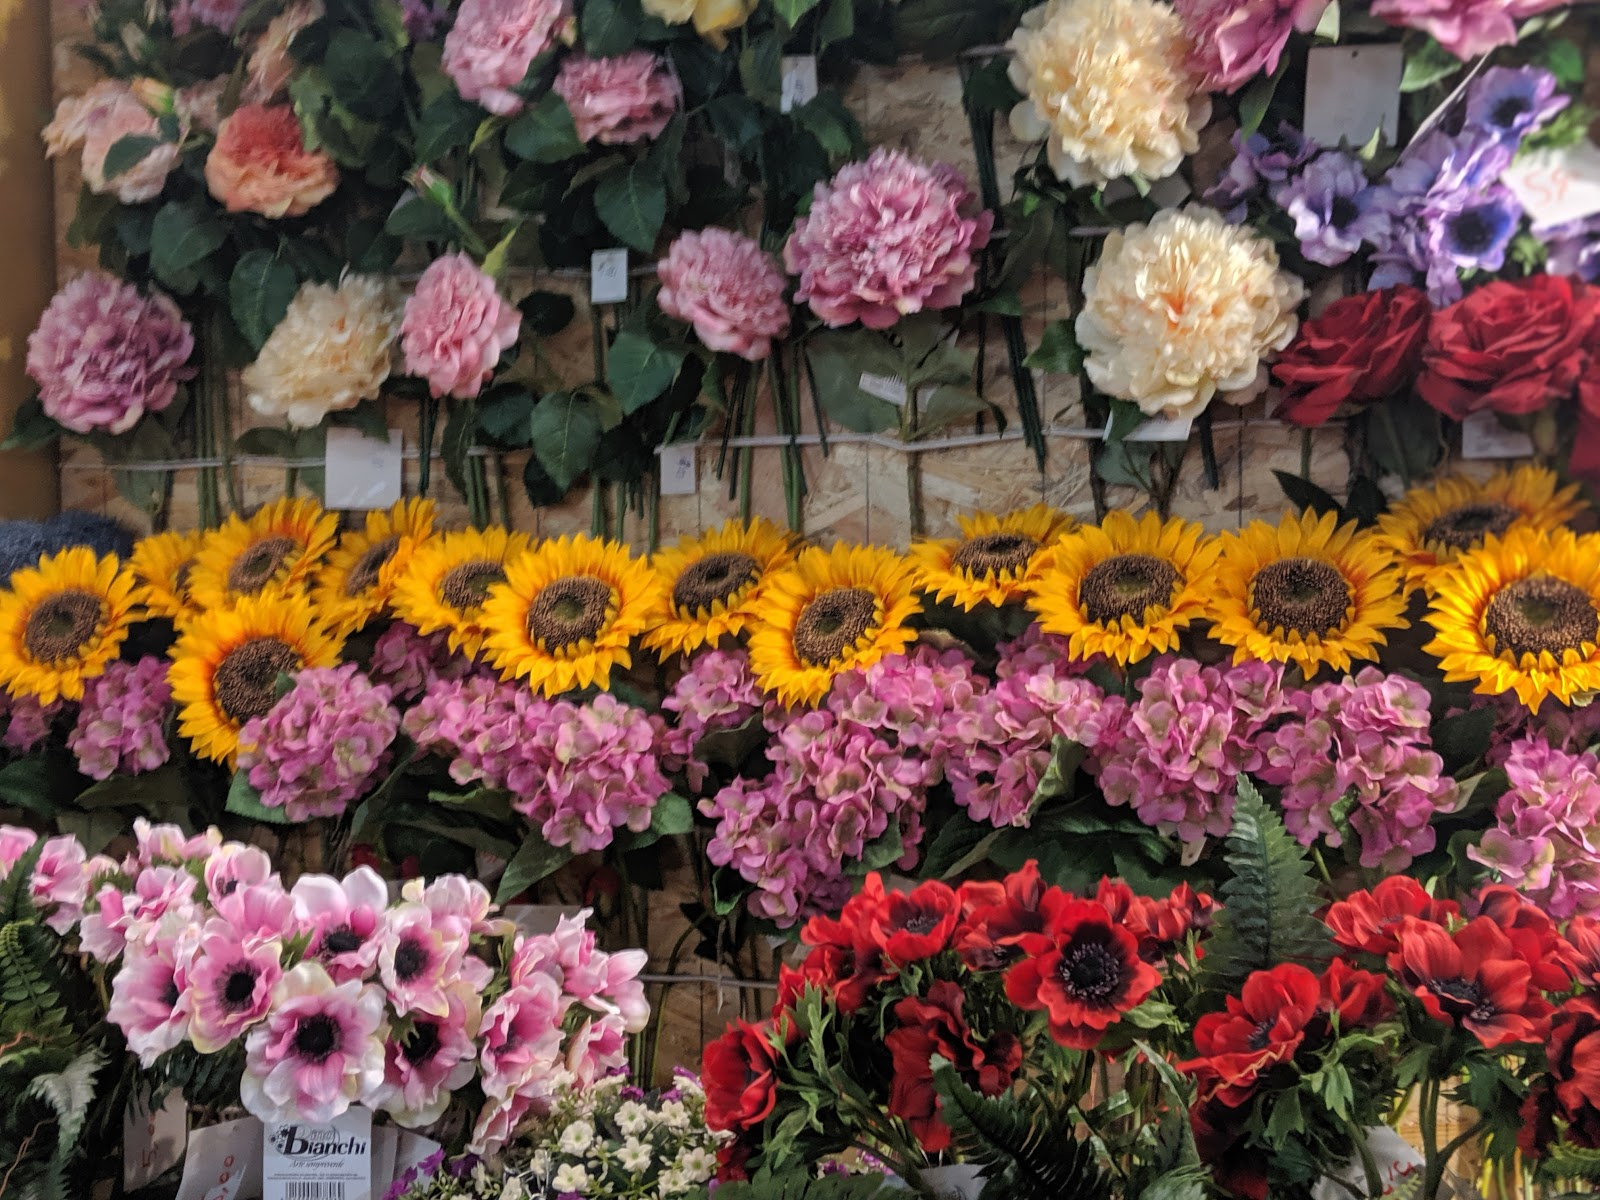 How to spend 5 hours in Florence - market flower stall